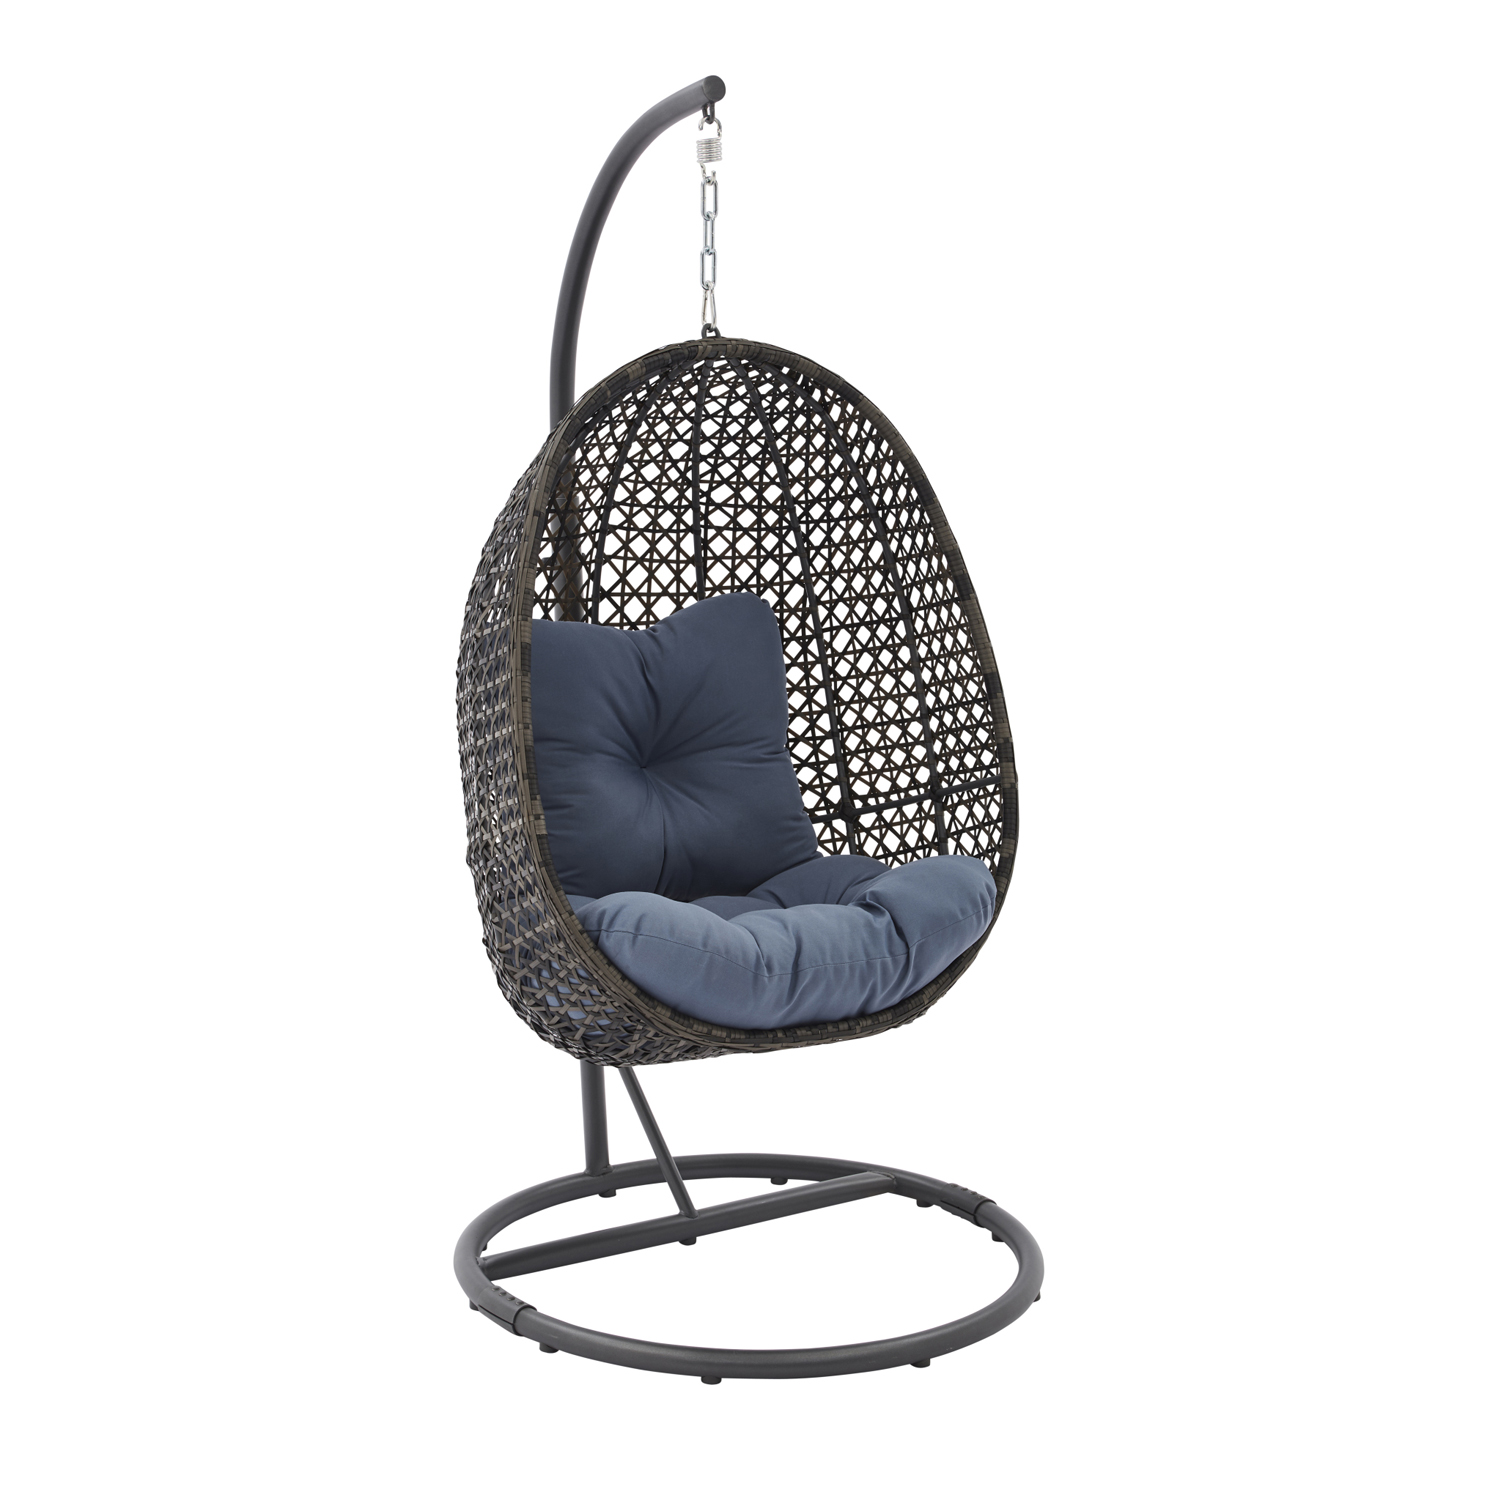 Hanging Chair Outdoor Details About Patio Furniture Cushions Porch Swing Outdoor Wicker Hanging Chair With Stand